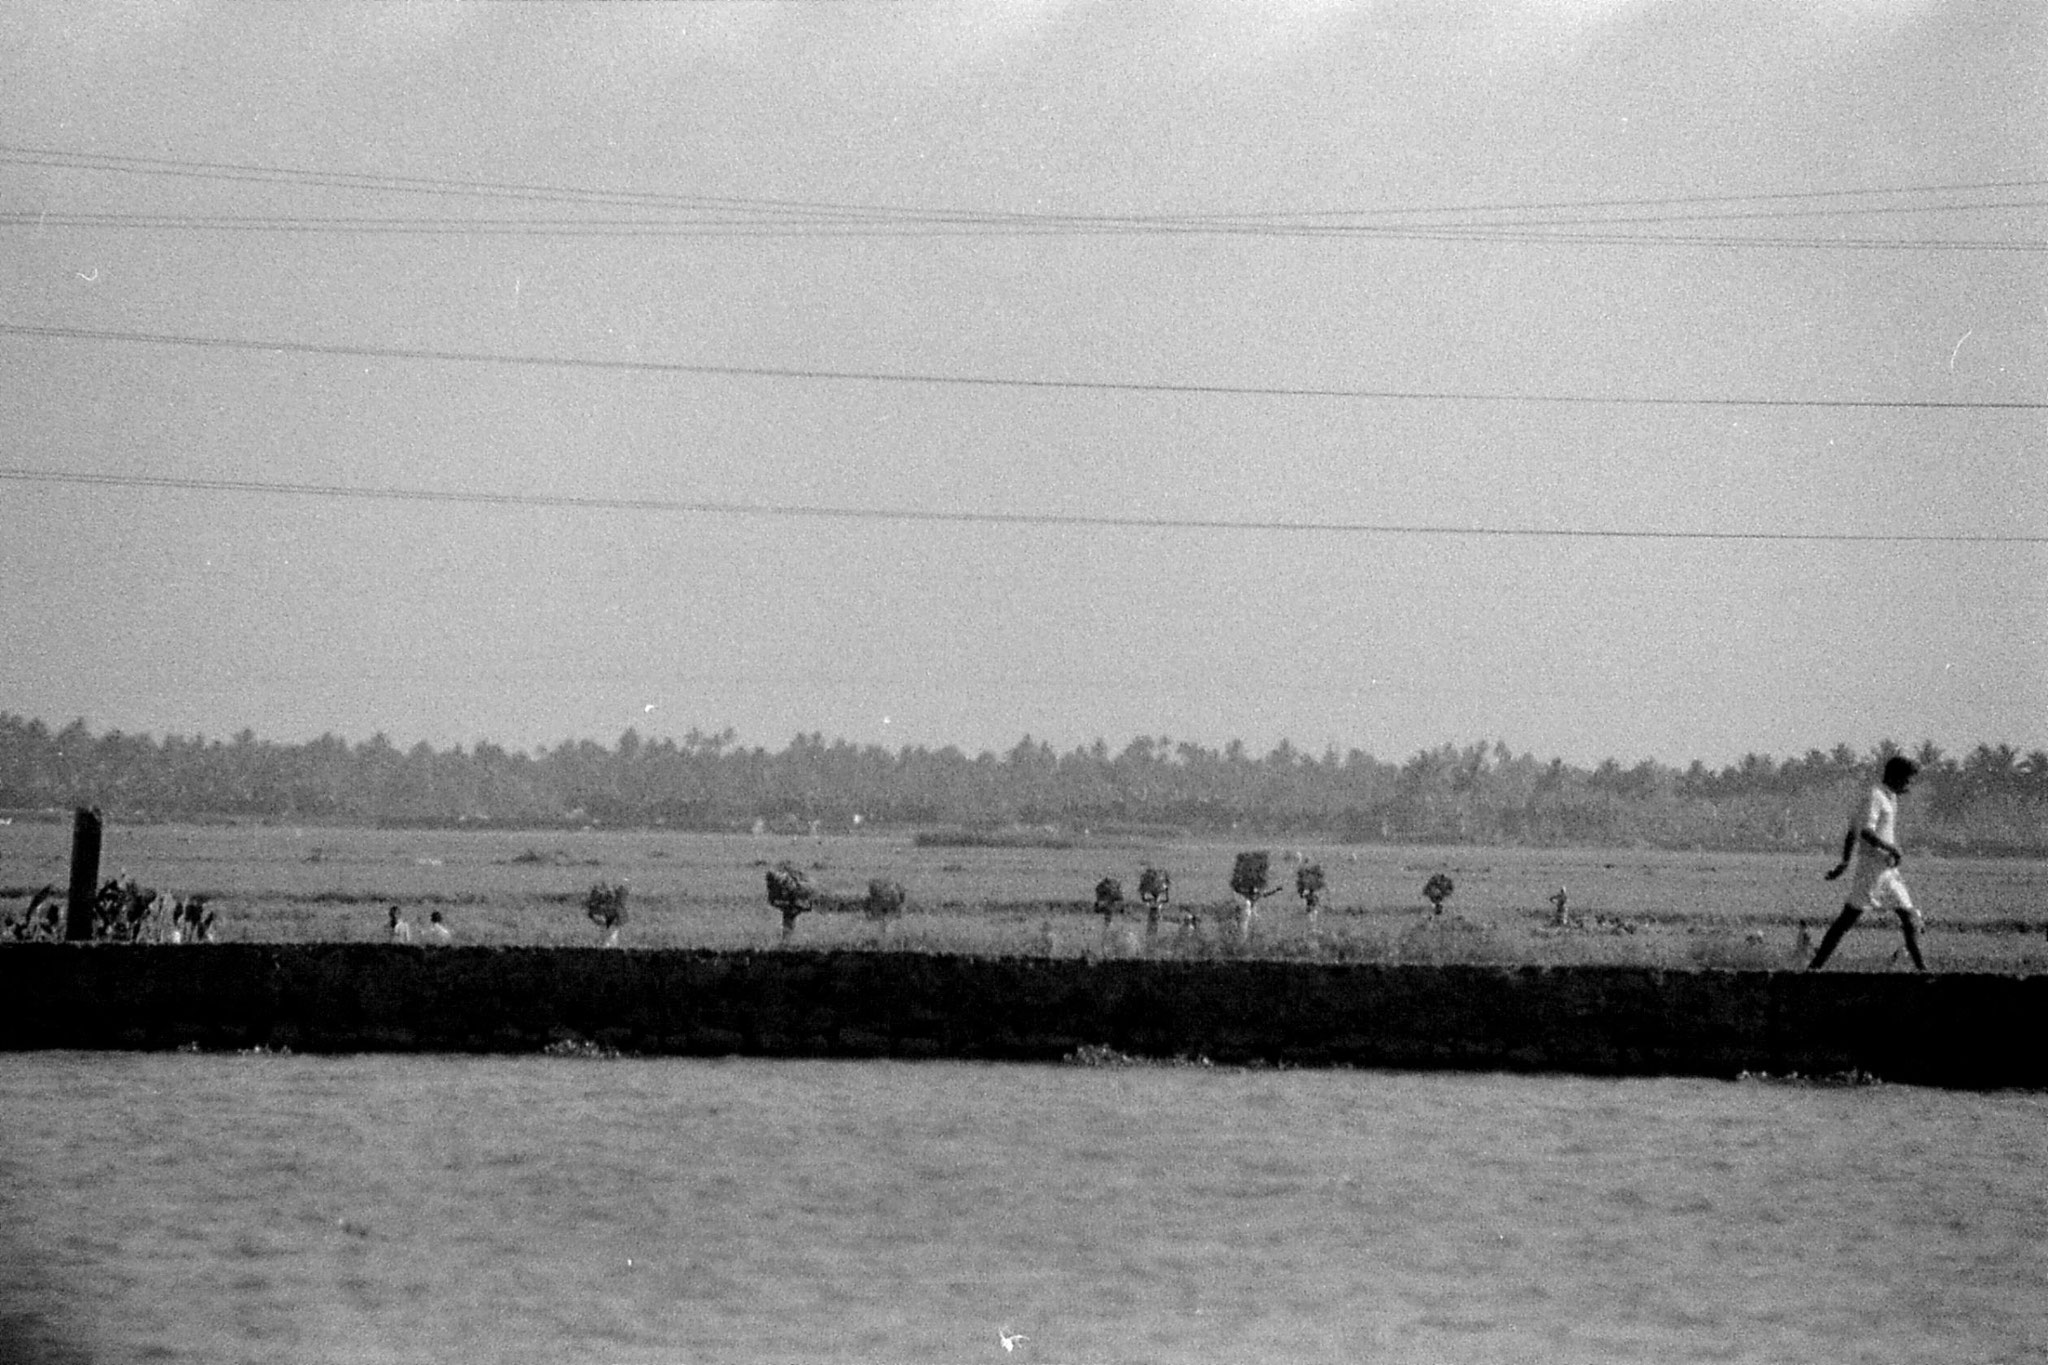 097/33: 23/2/1990 boat to Alleppey